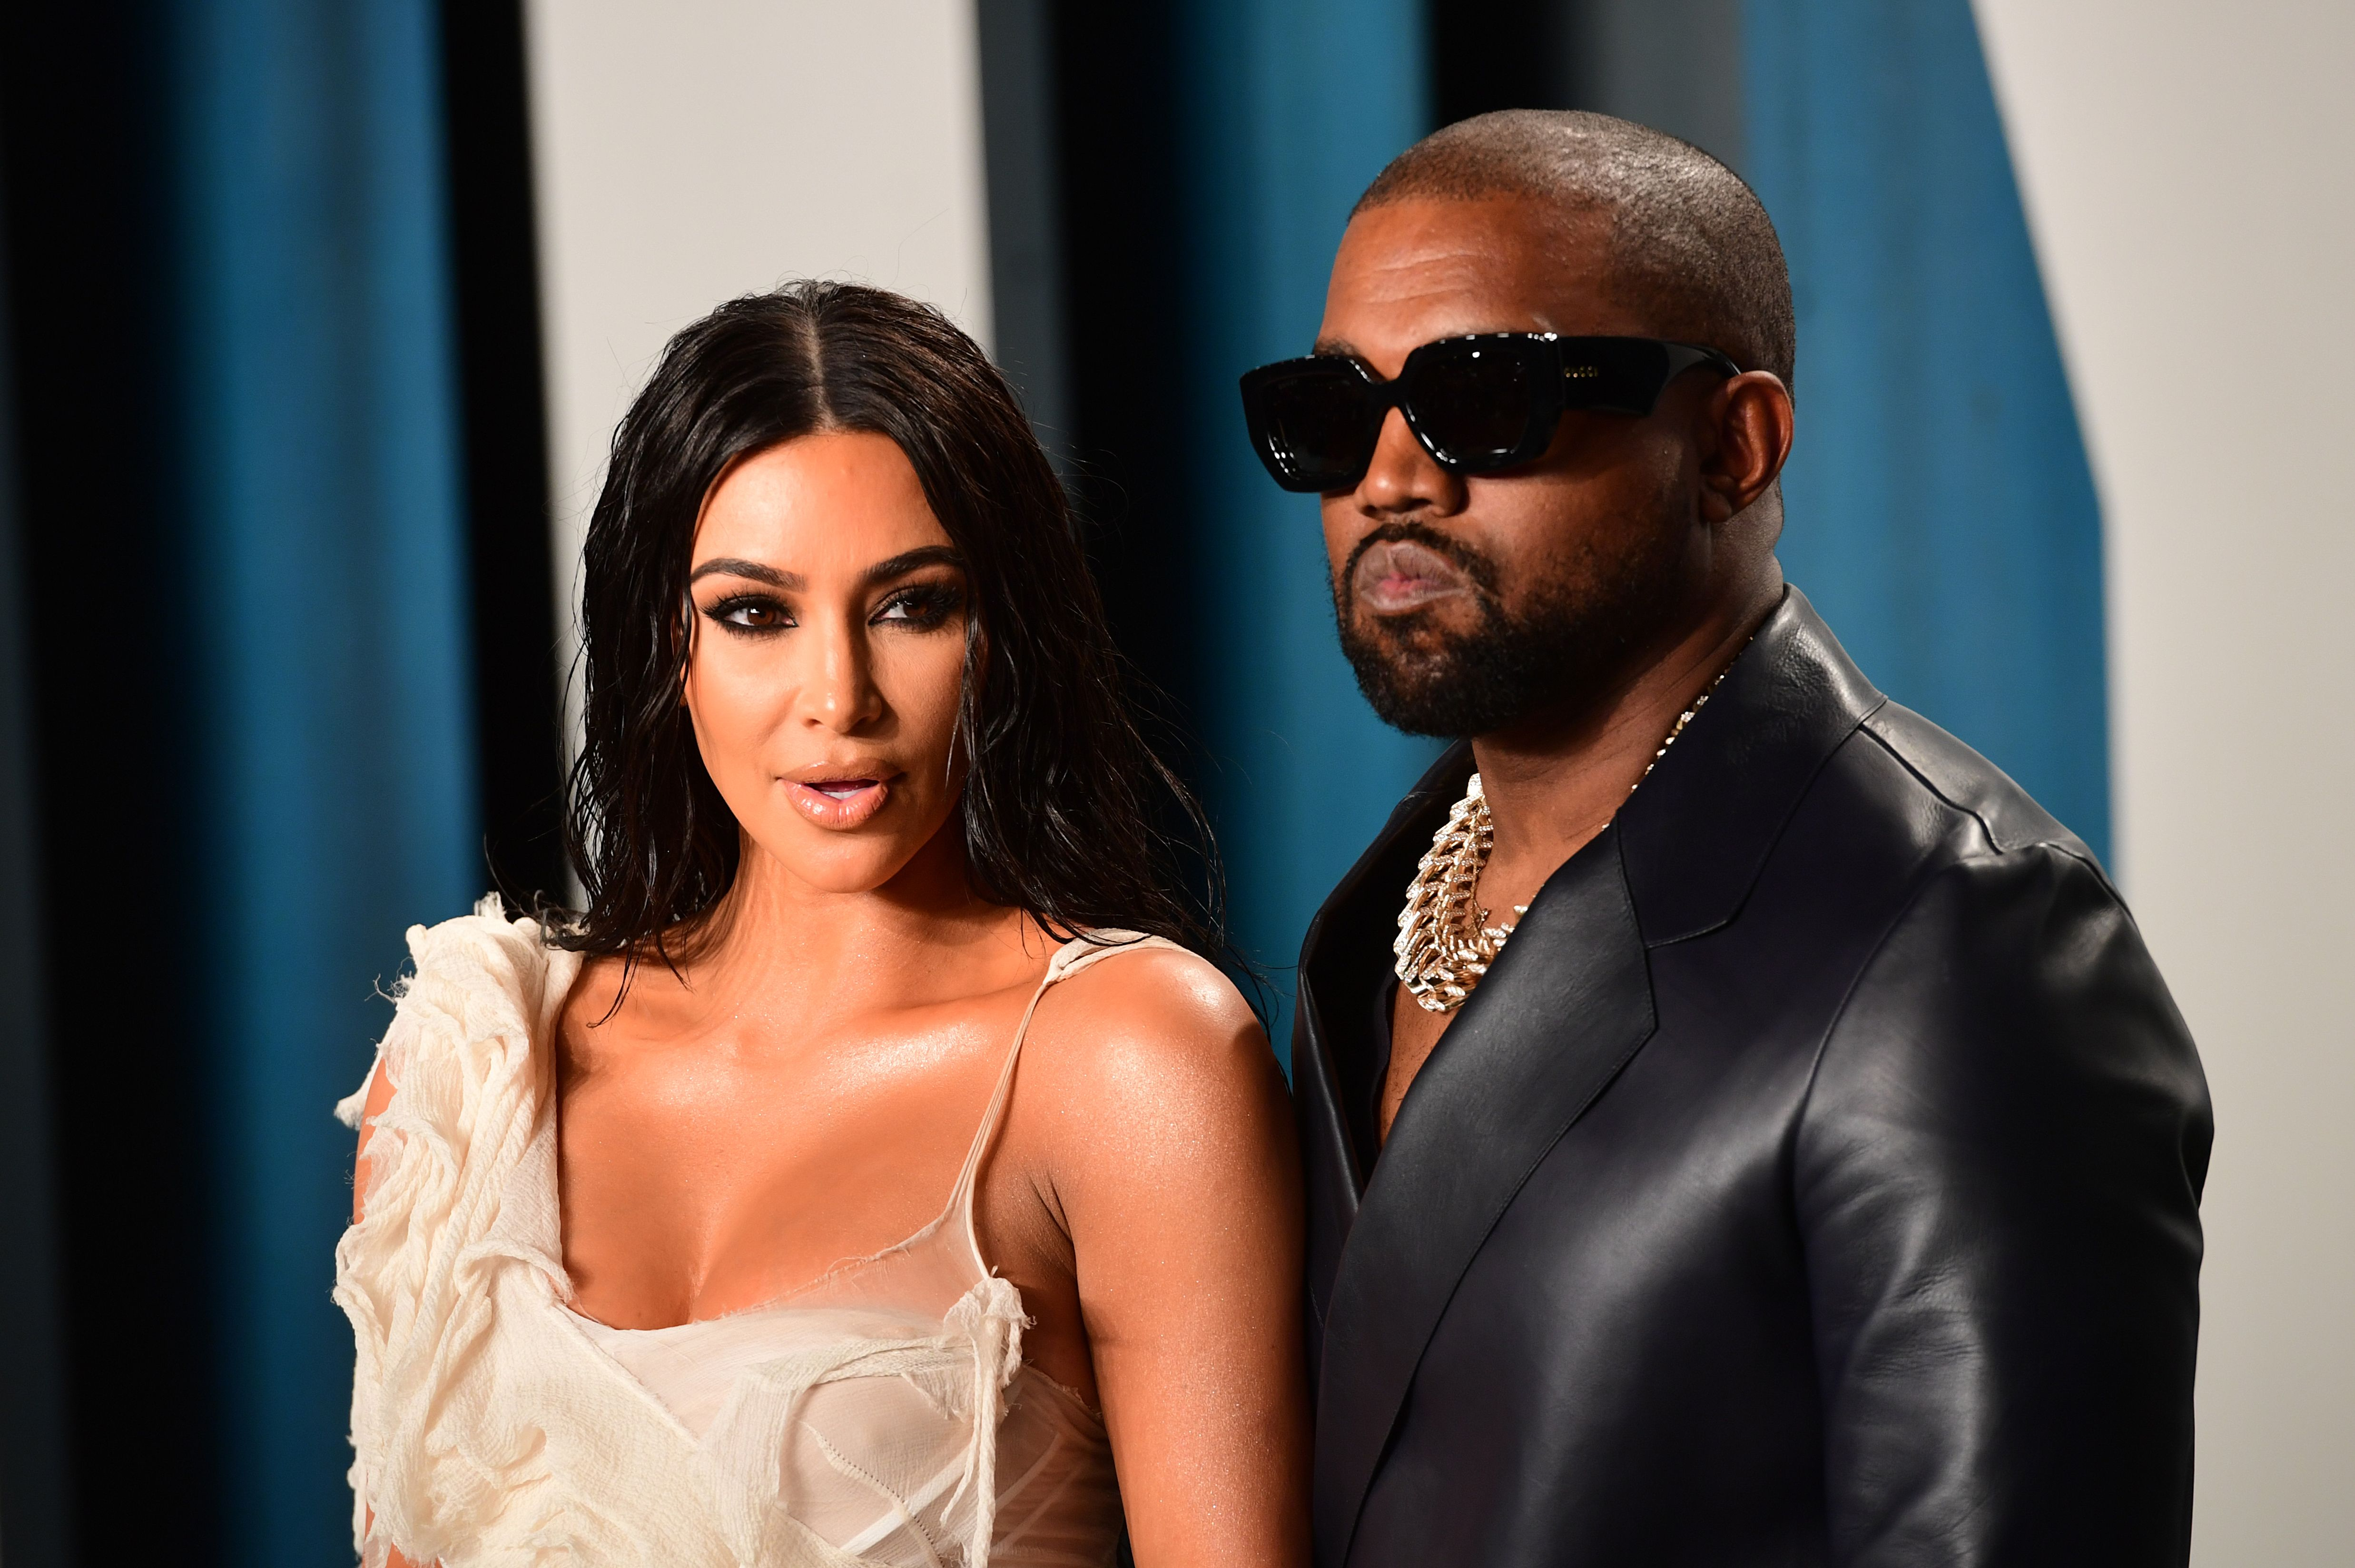 Kim Kardashian and Kanye West at the Vanity Fair Oscar Party in February 2020 | Source: Getty Images